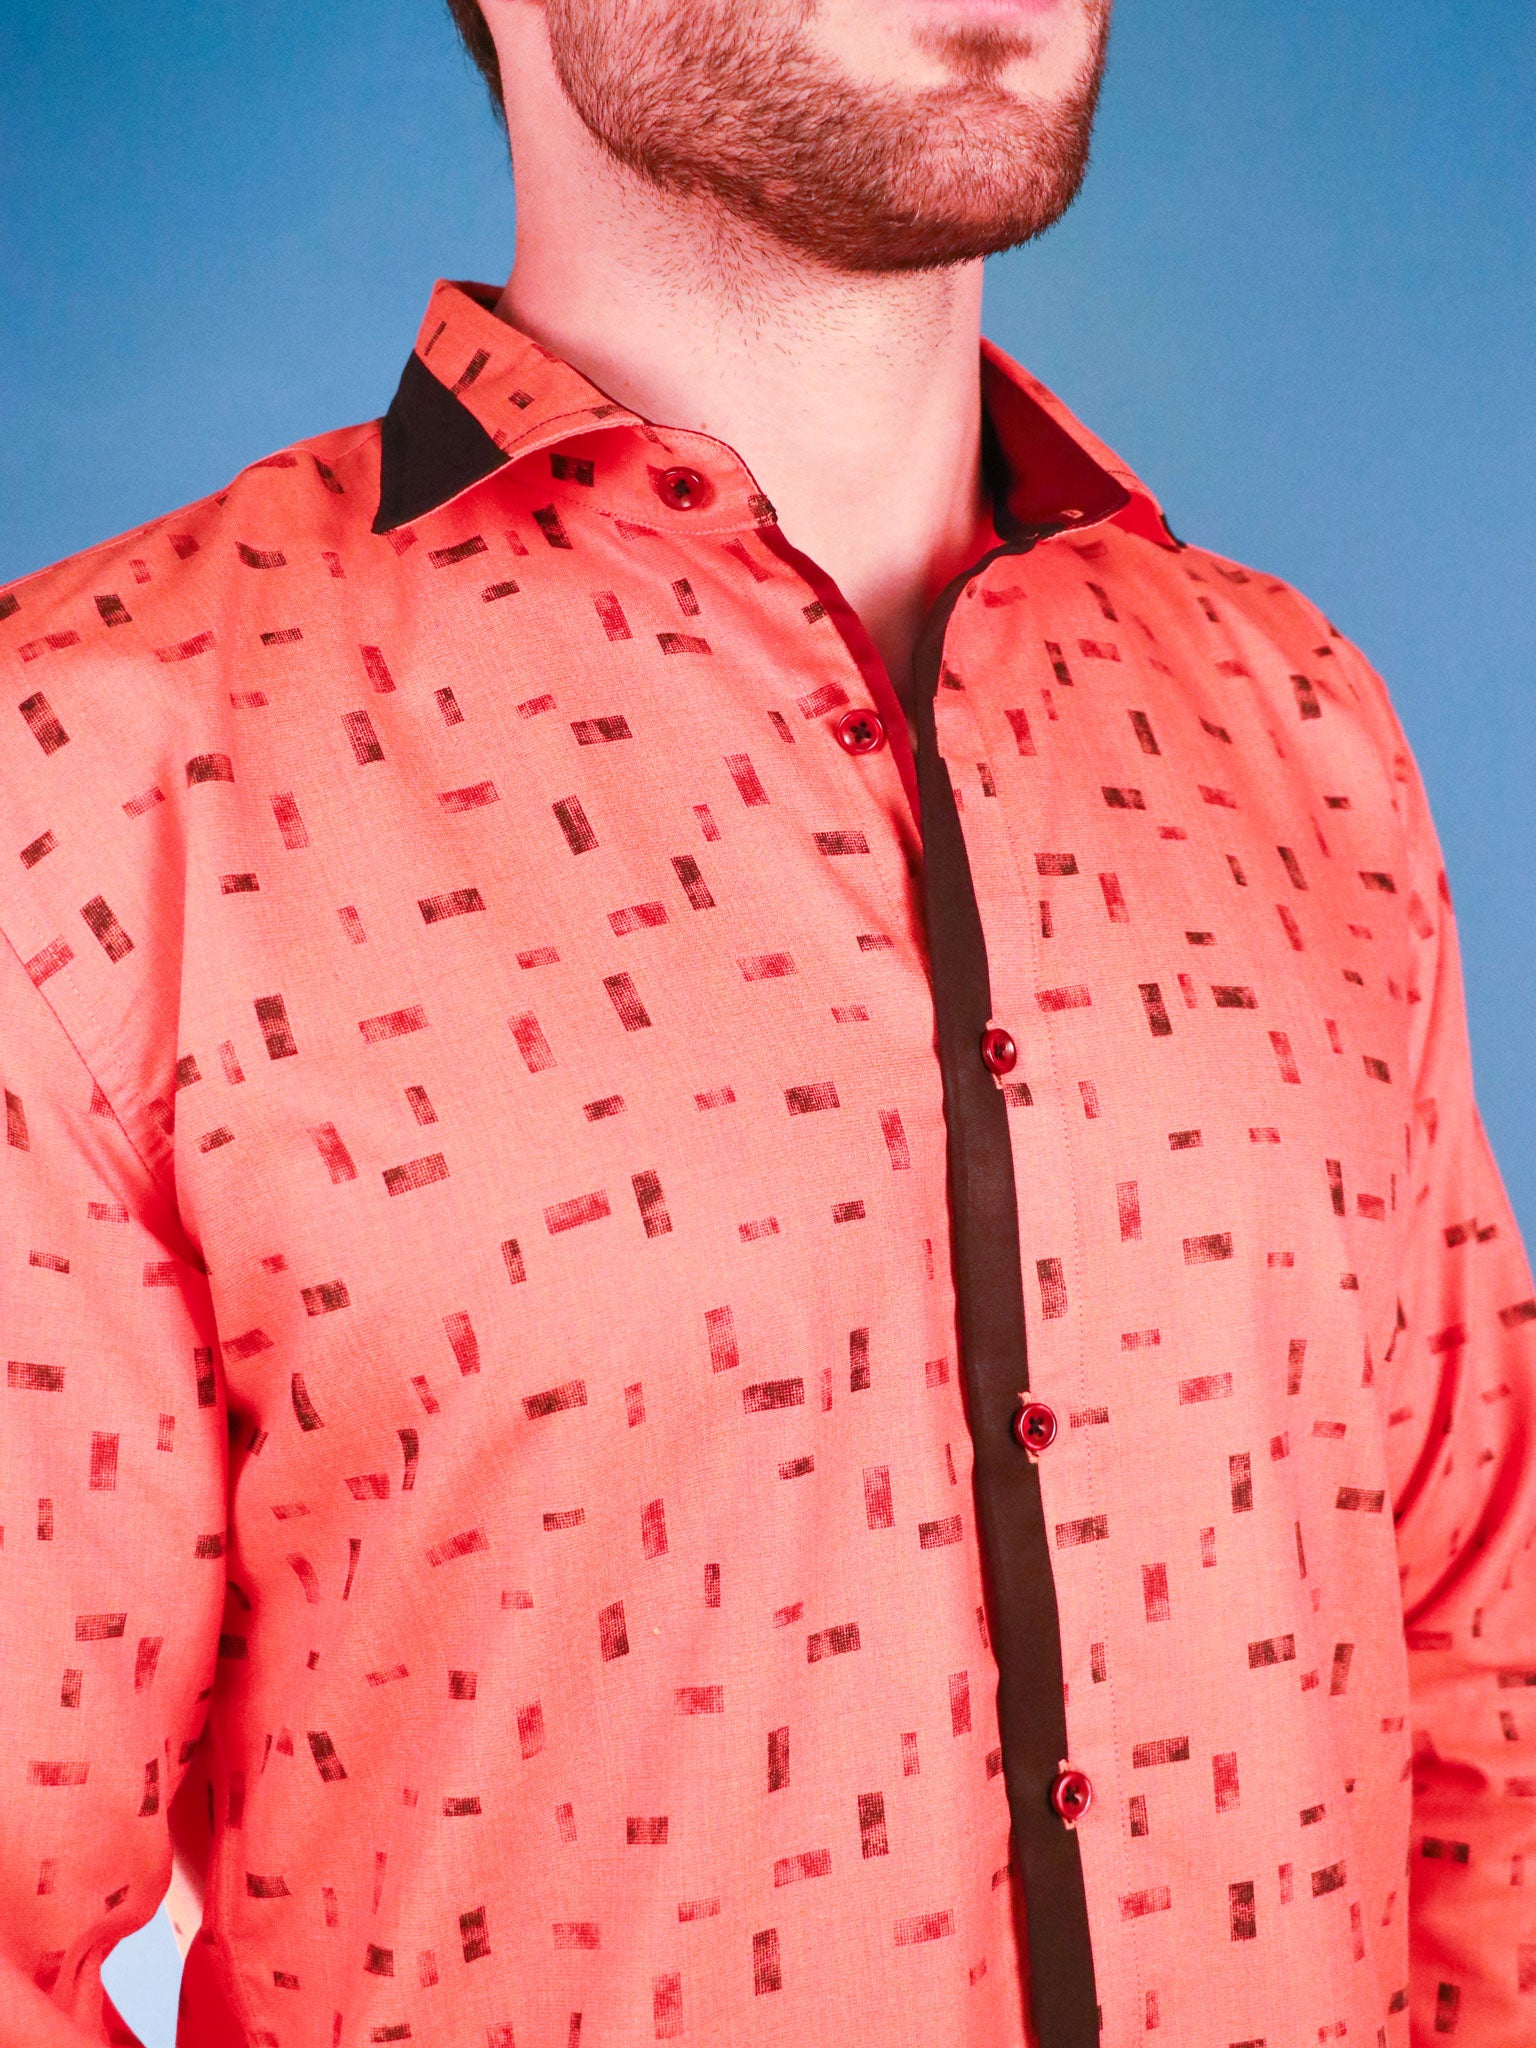 new orange shirt model image collar close up